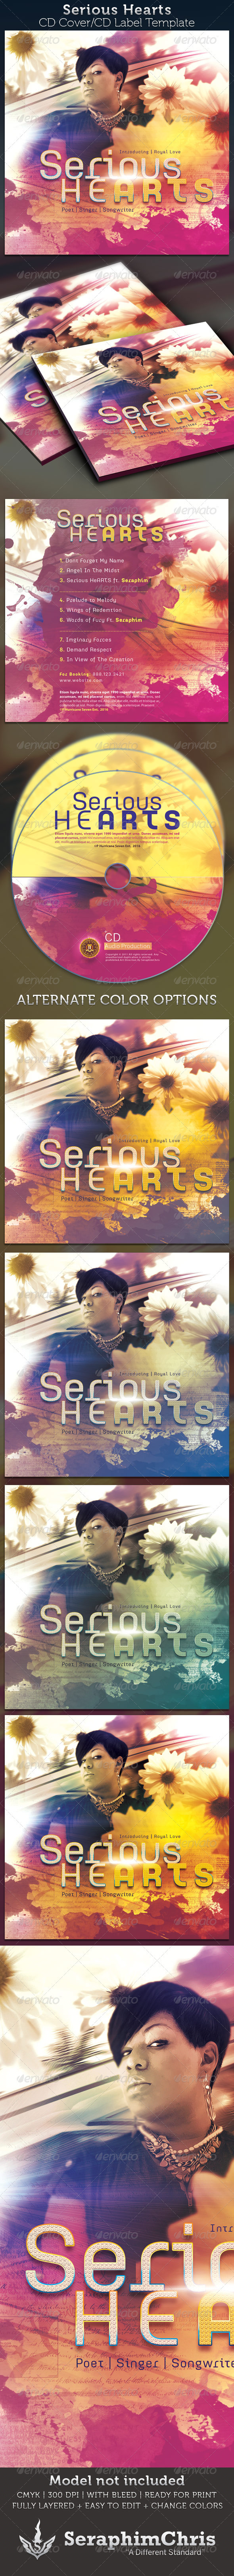 Serious Hearts CD Cover Artwork Template - CD & DVD artwork Print Templates